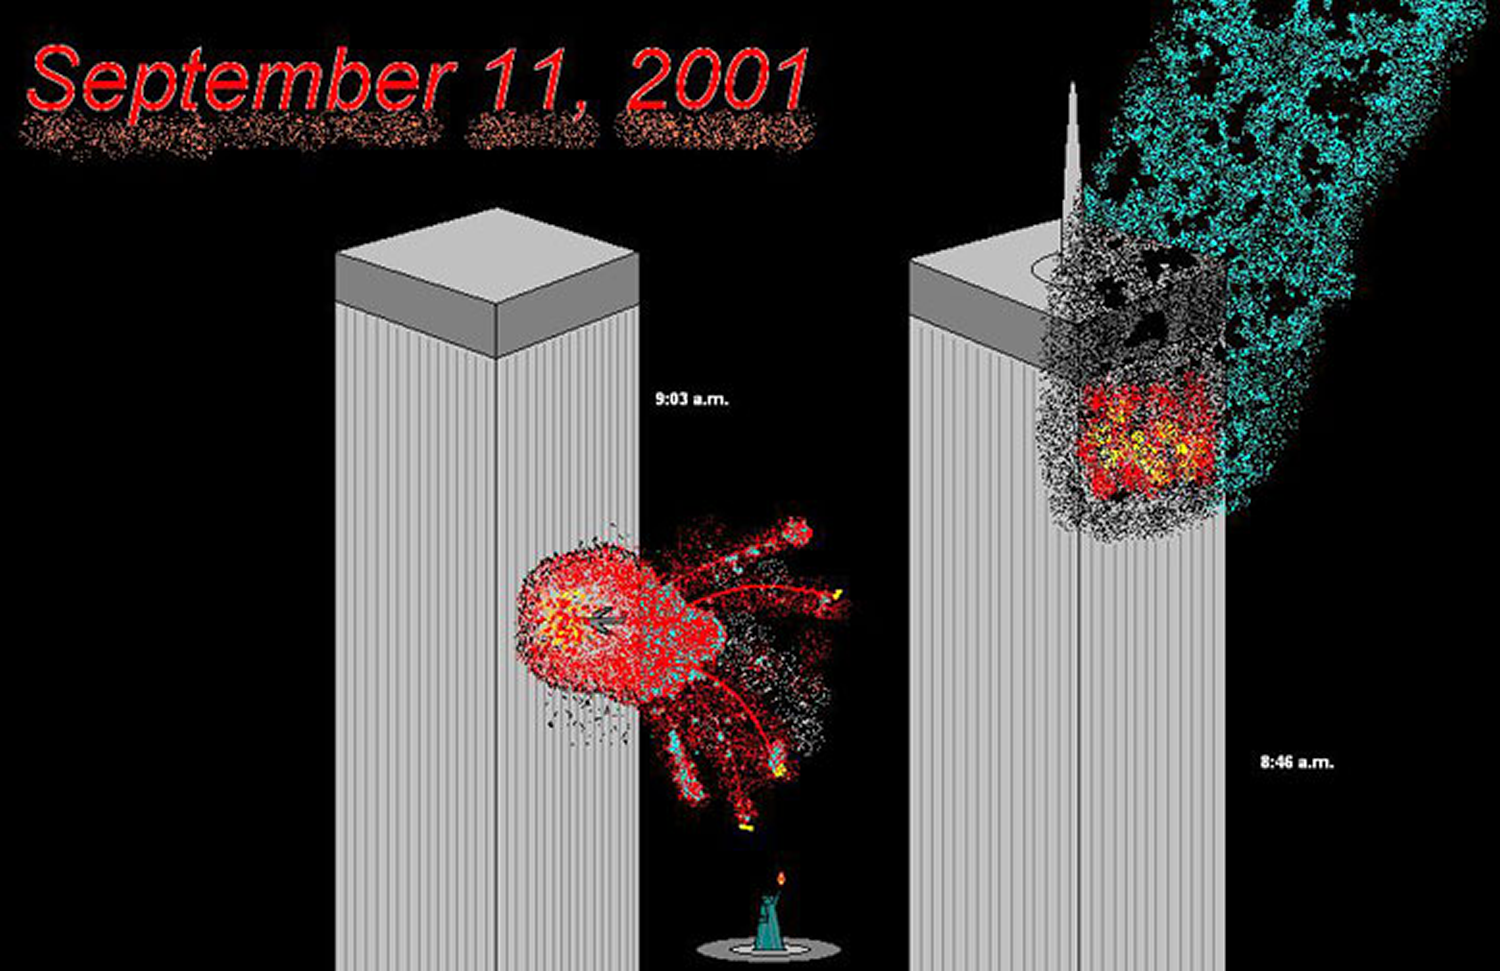 We Shall Never Forget!